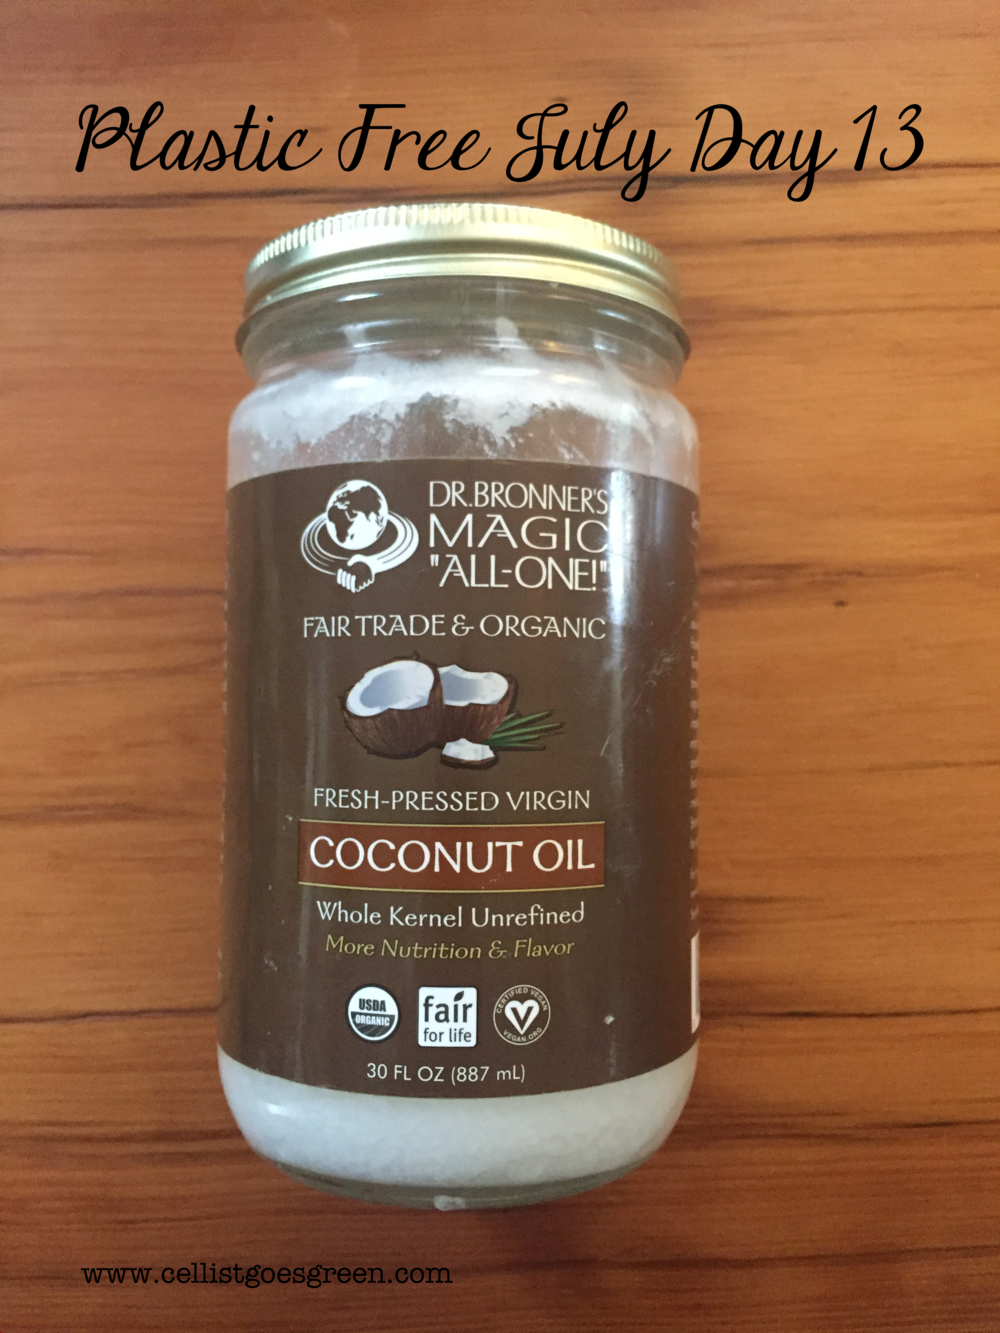 Plastic Free July Day 13: Why coconut oil is awesome | Cellist Goes Green